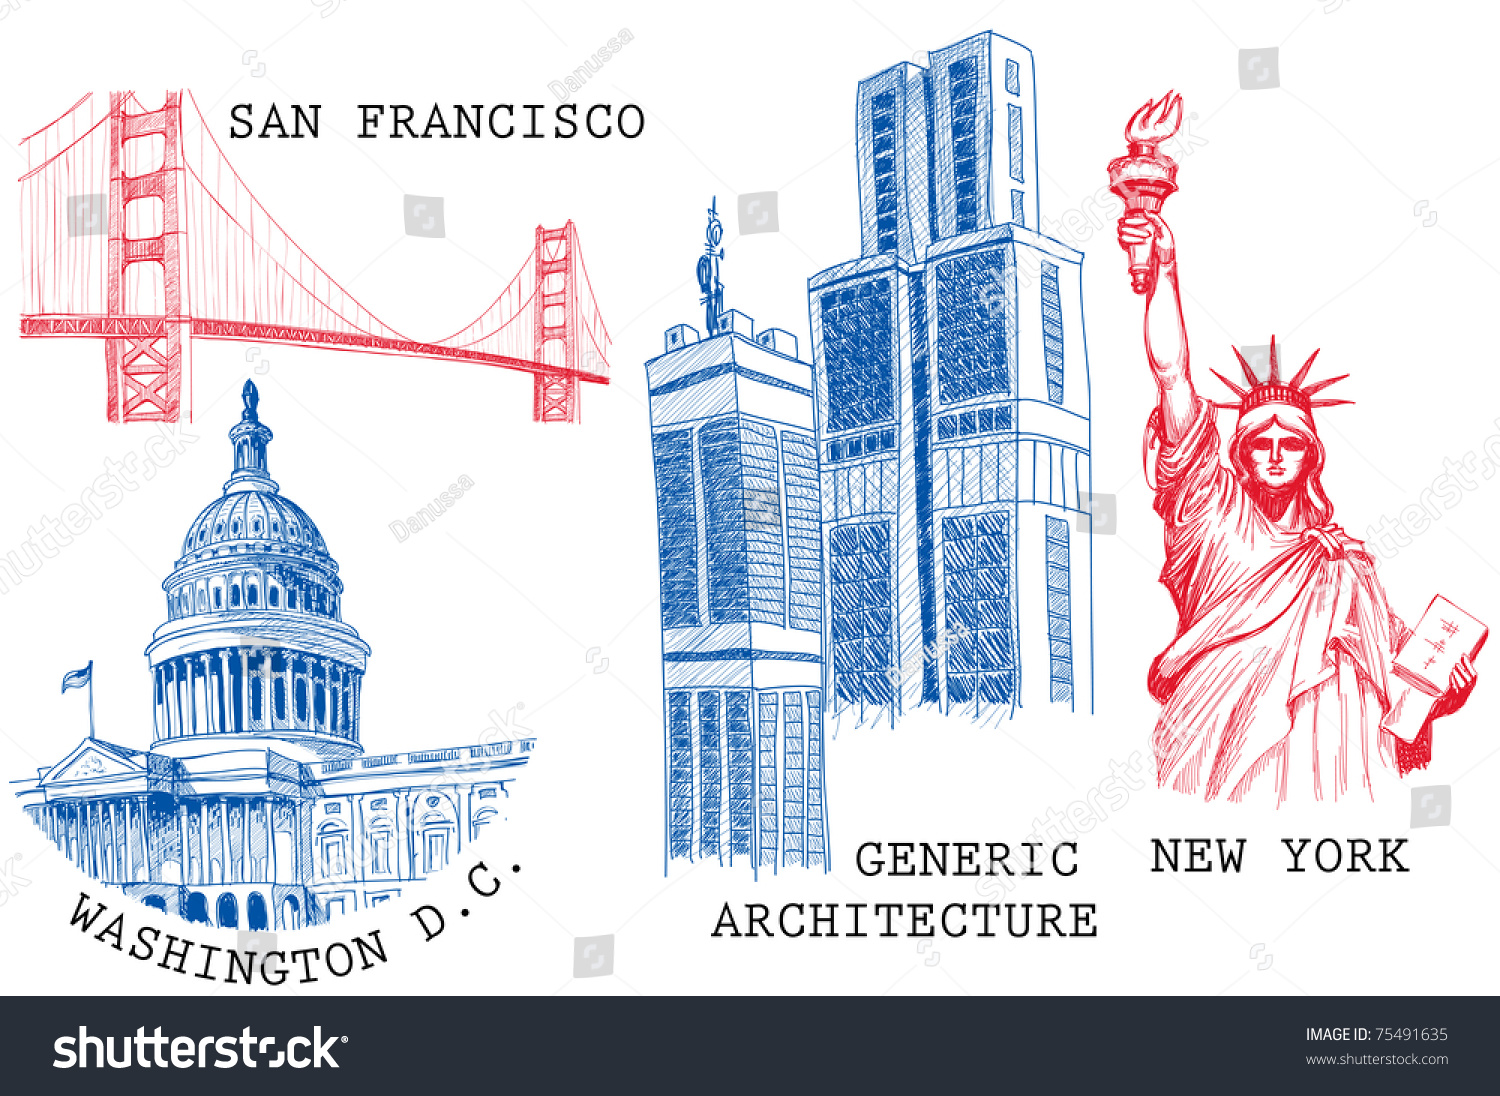 Usa famous cities architecture landmarks sketches stock for Famous cities in new york